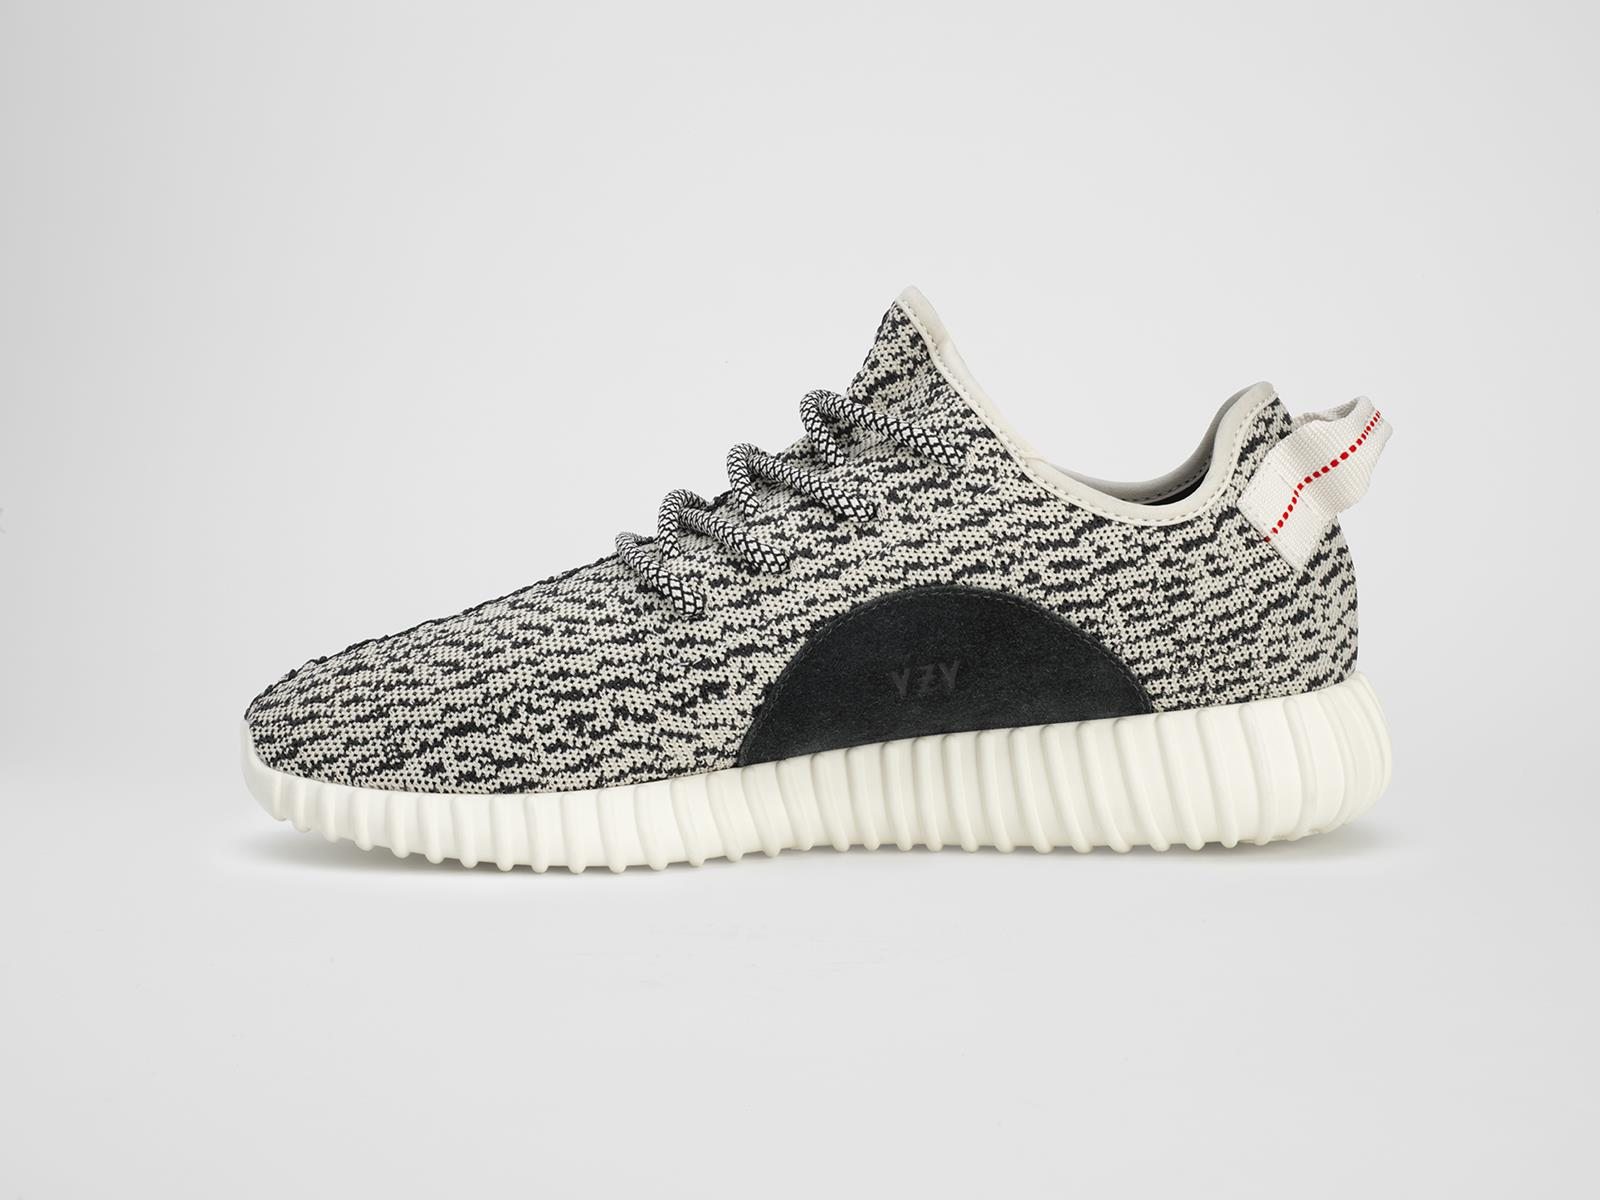 Yeezy Boost 350 by Kanye West e adidas Originals